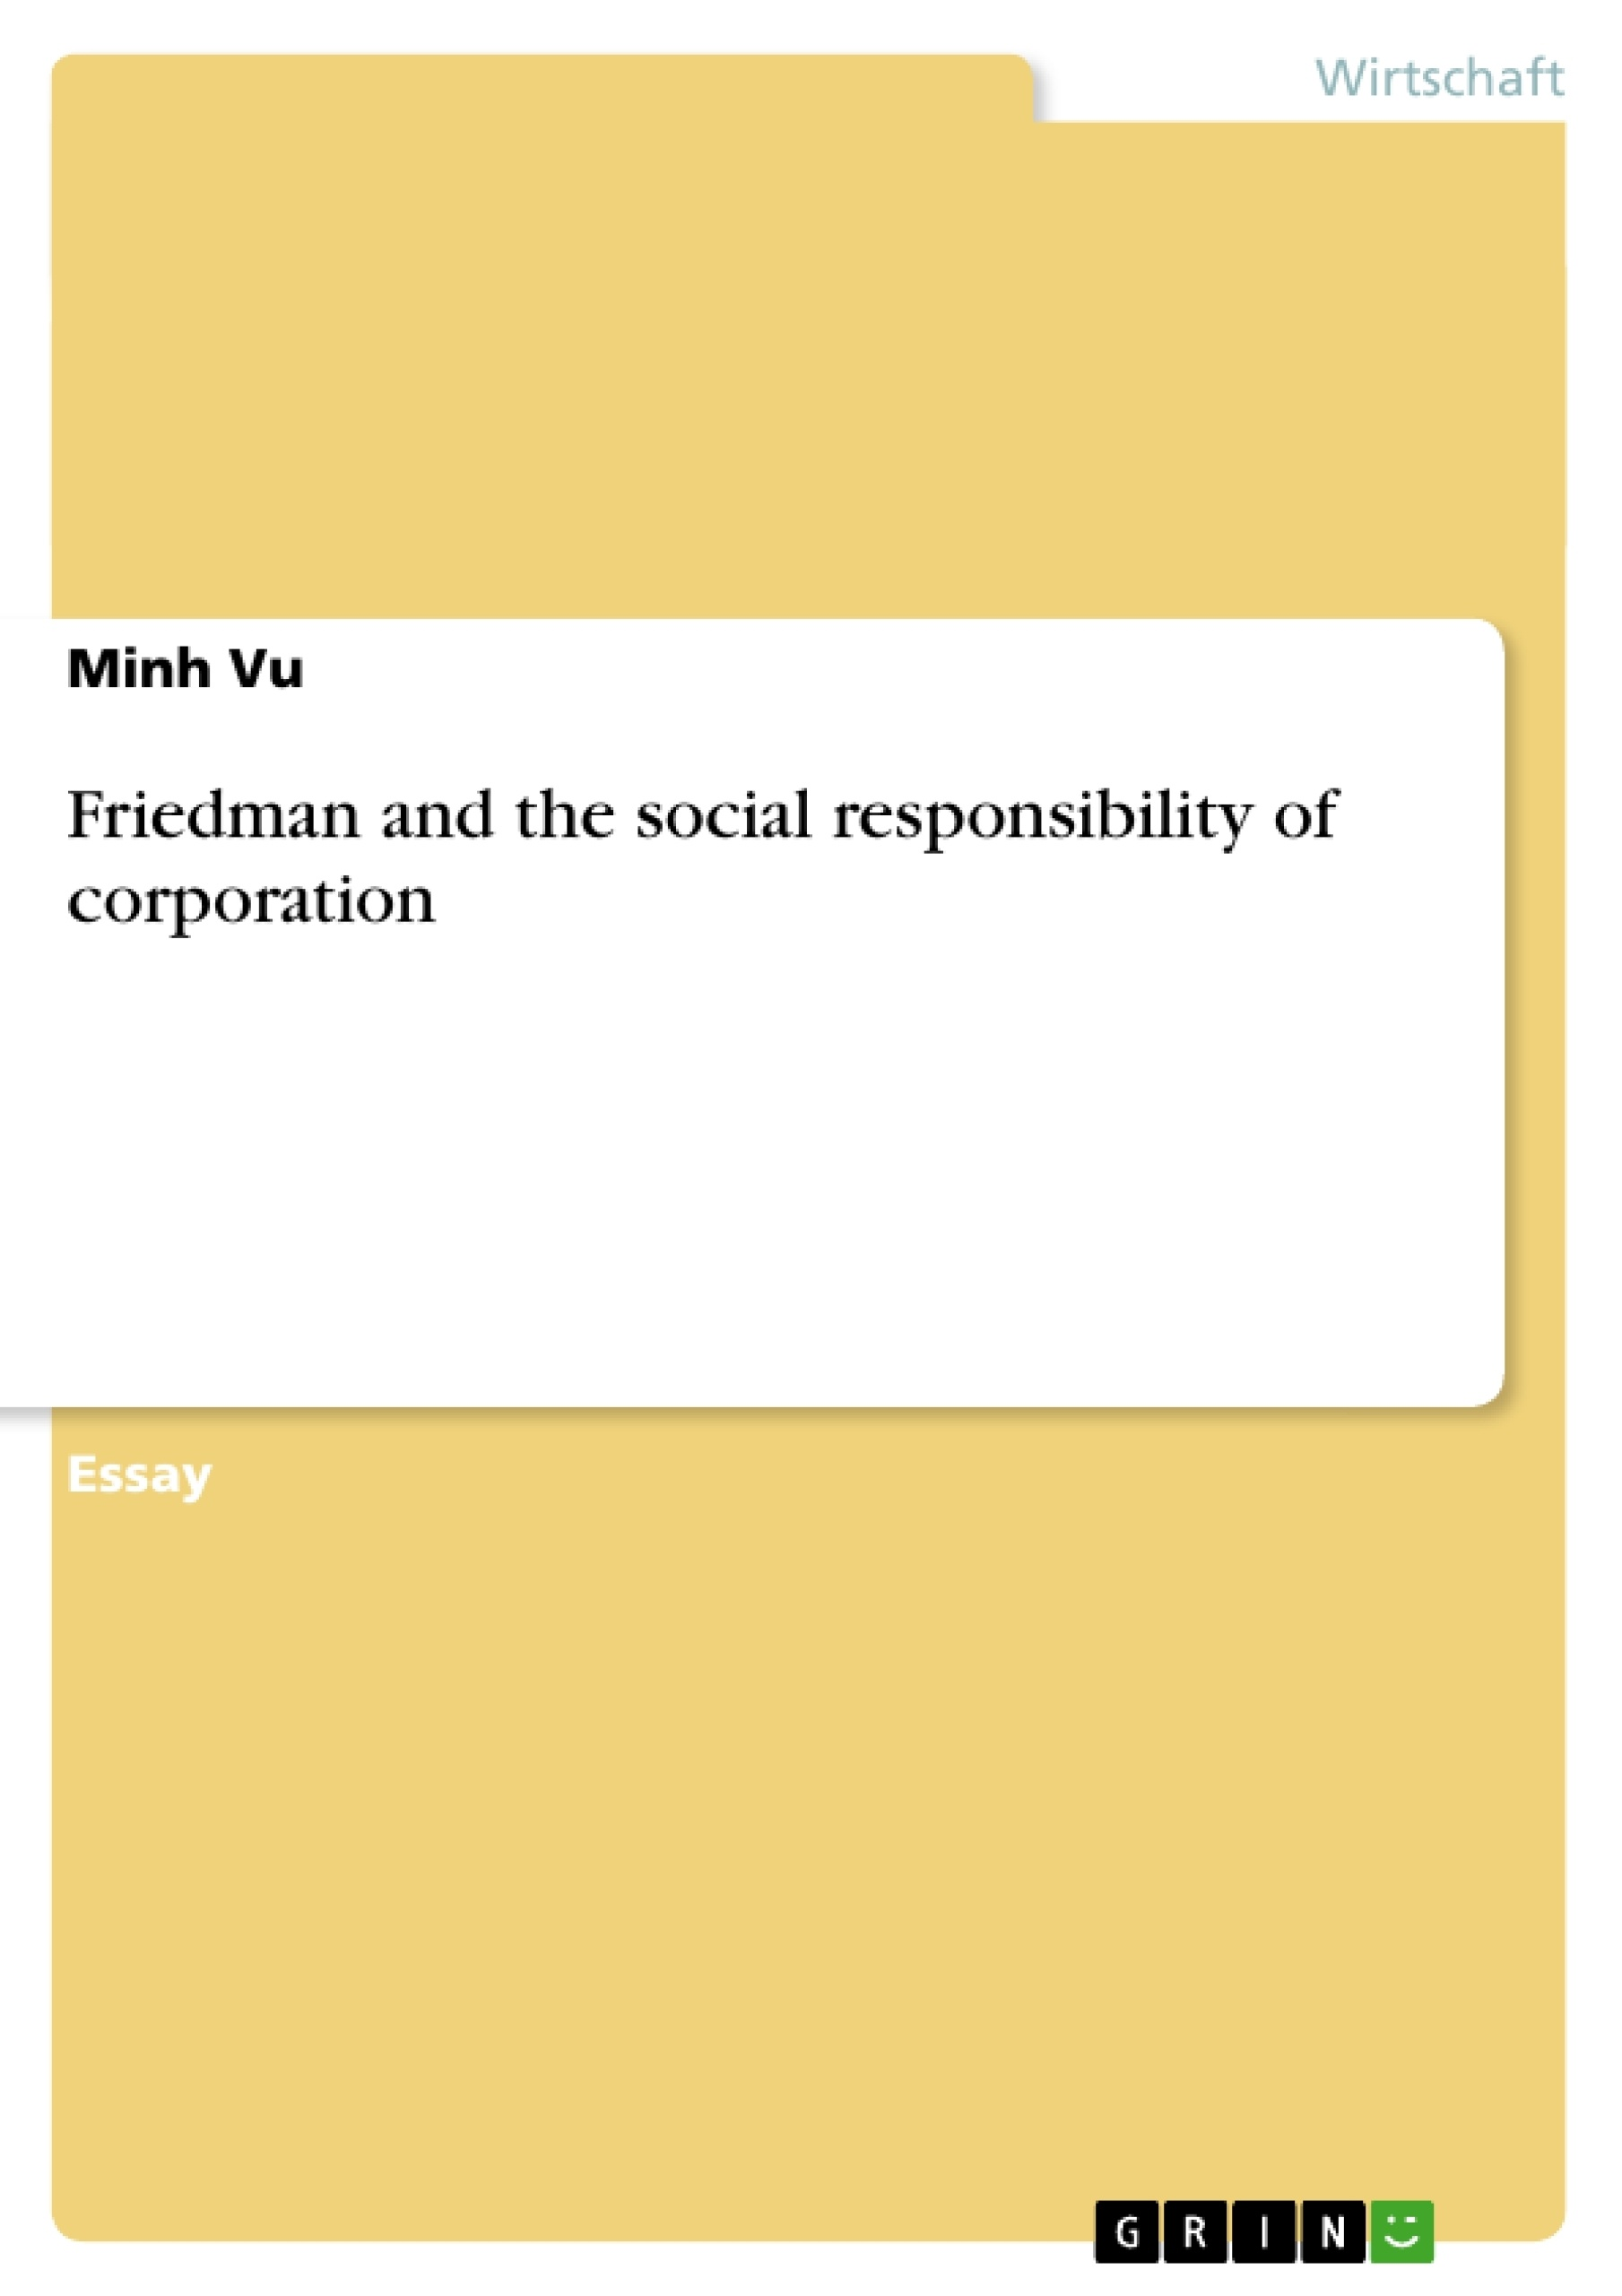 Titel: Friedman and the social responsibility of corporation